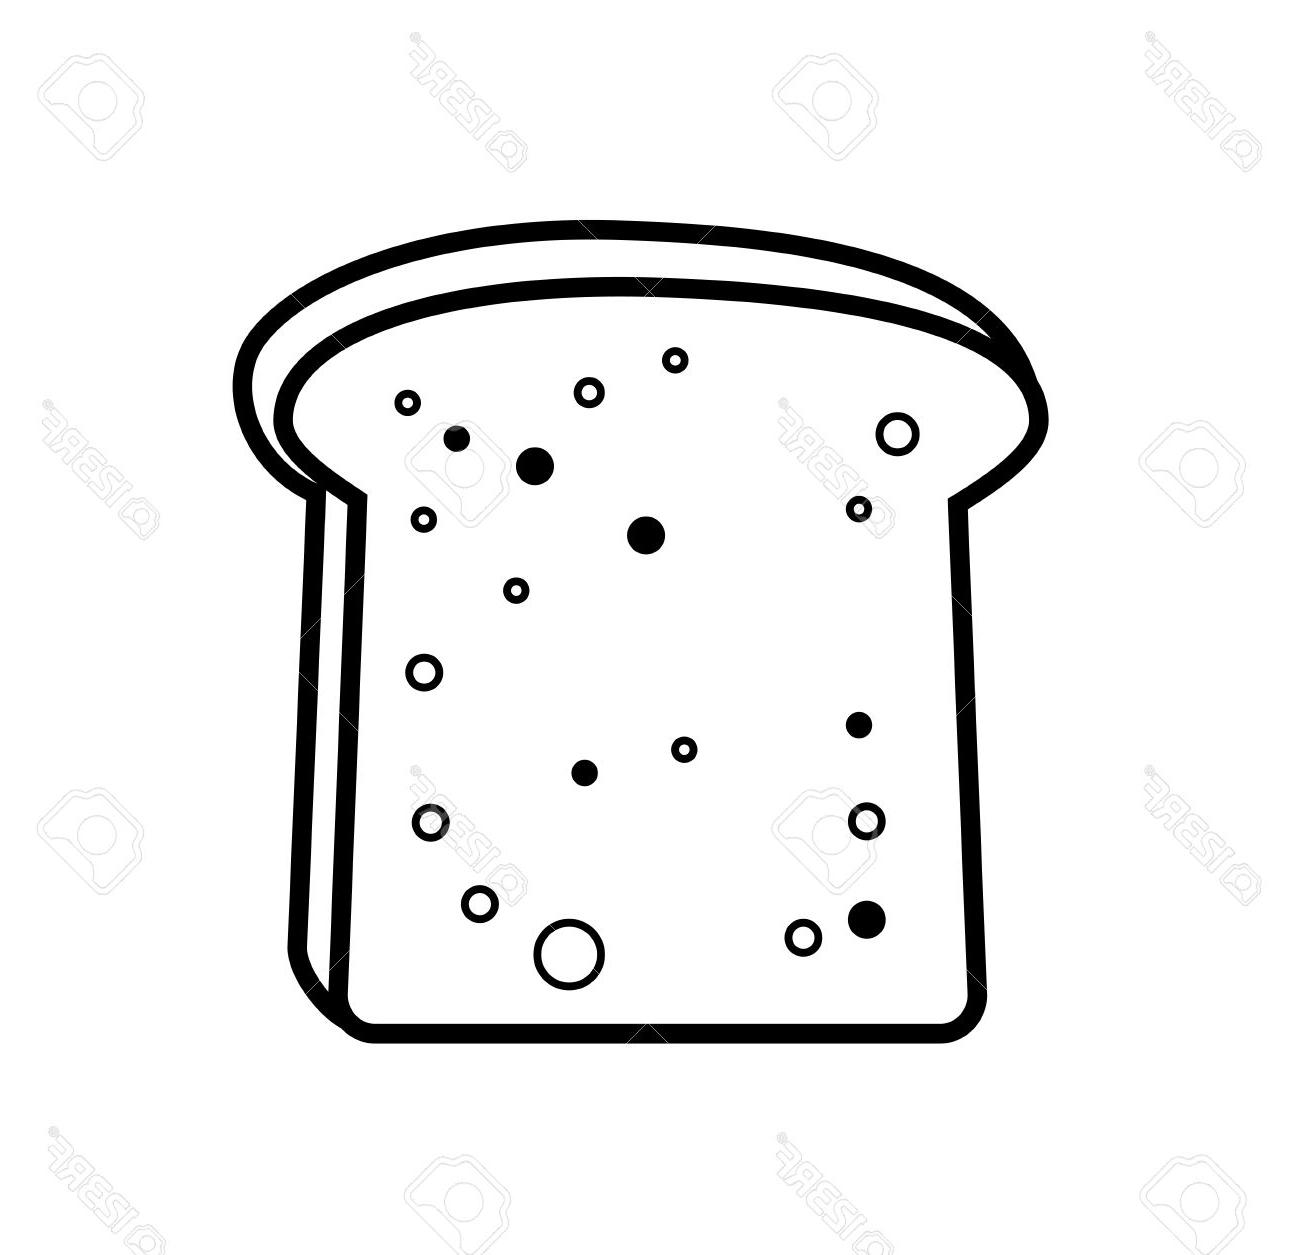 Top Bread Clip Art Black And White Library » Free Vector Art.